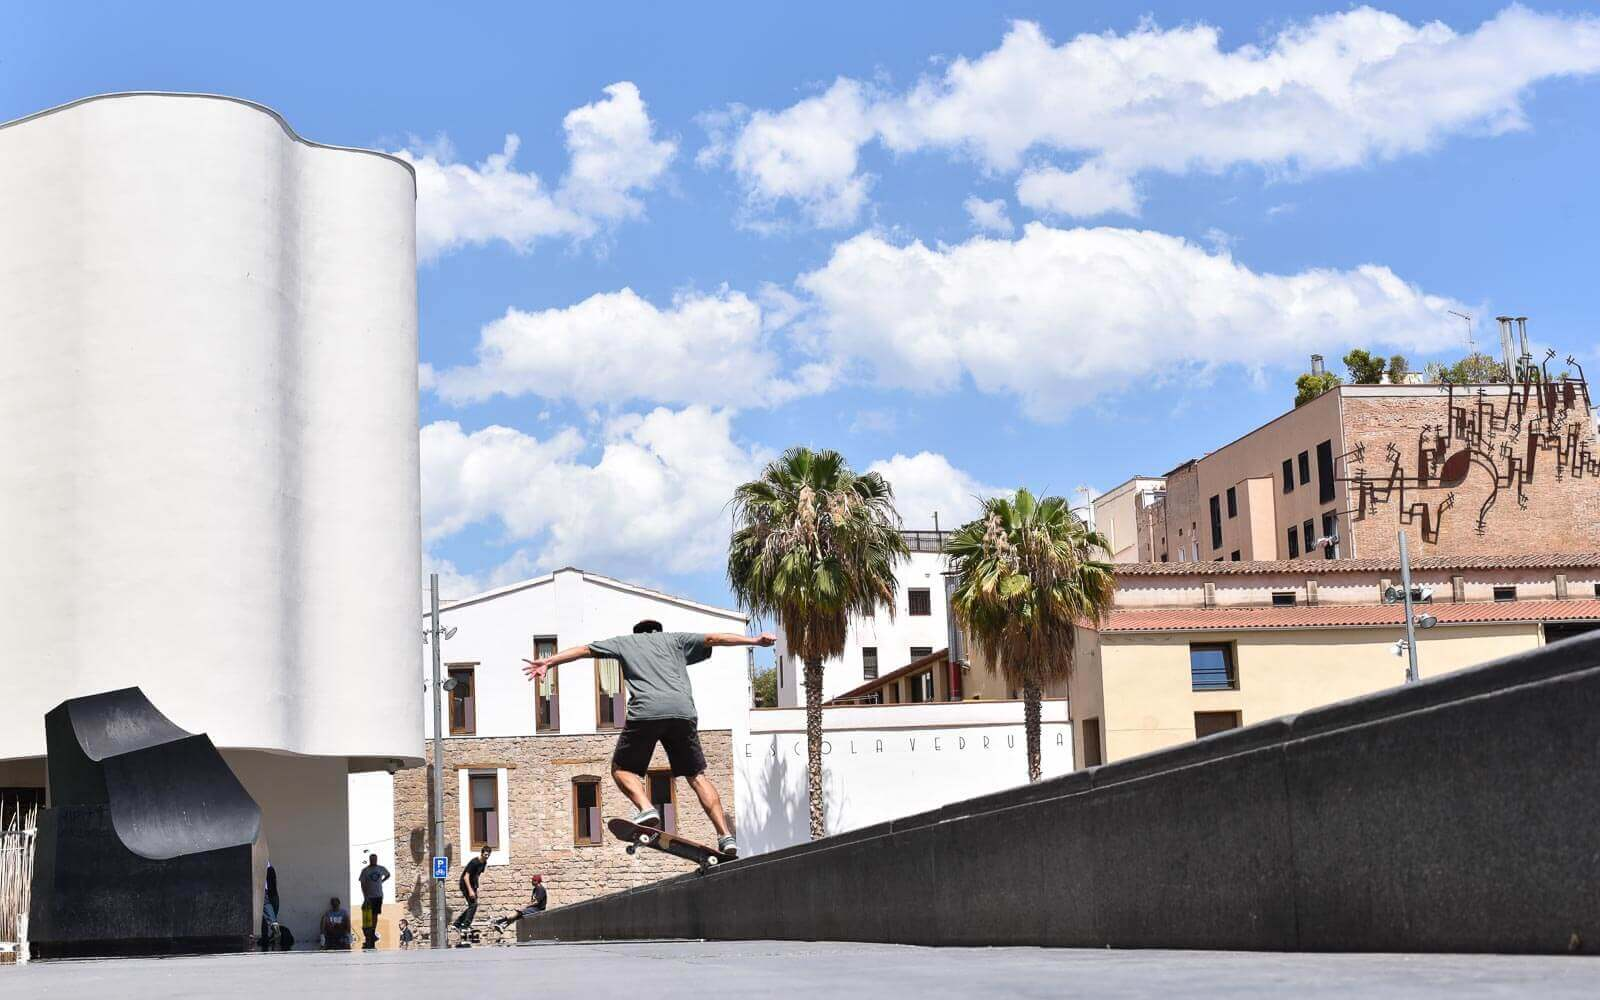 a skateboarder takes a jump at macba in raval neighbourhood barcelona